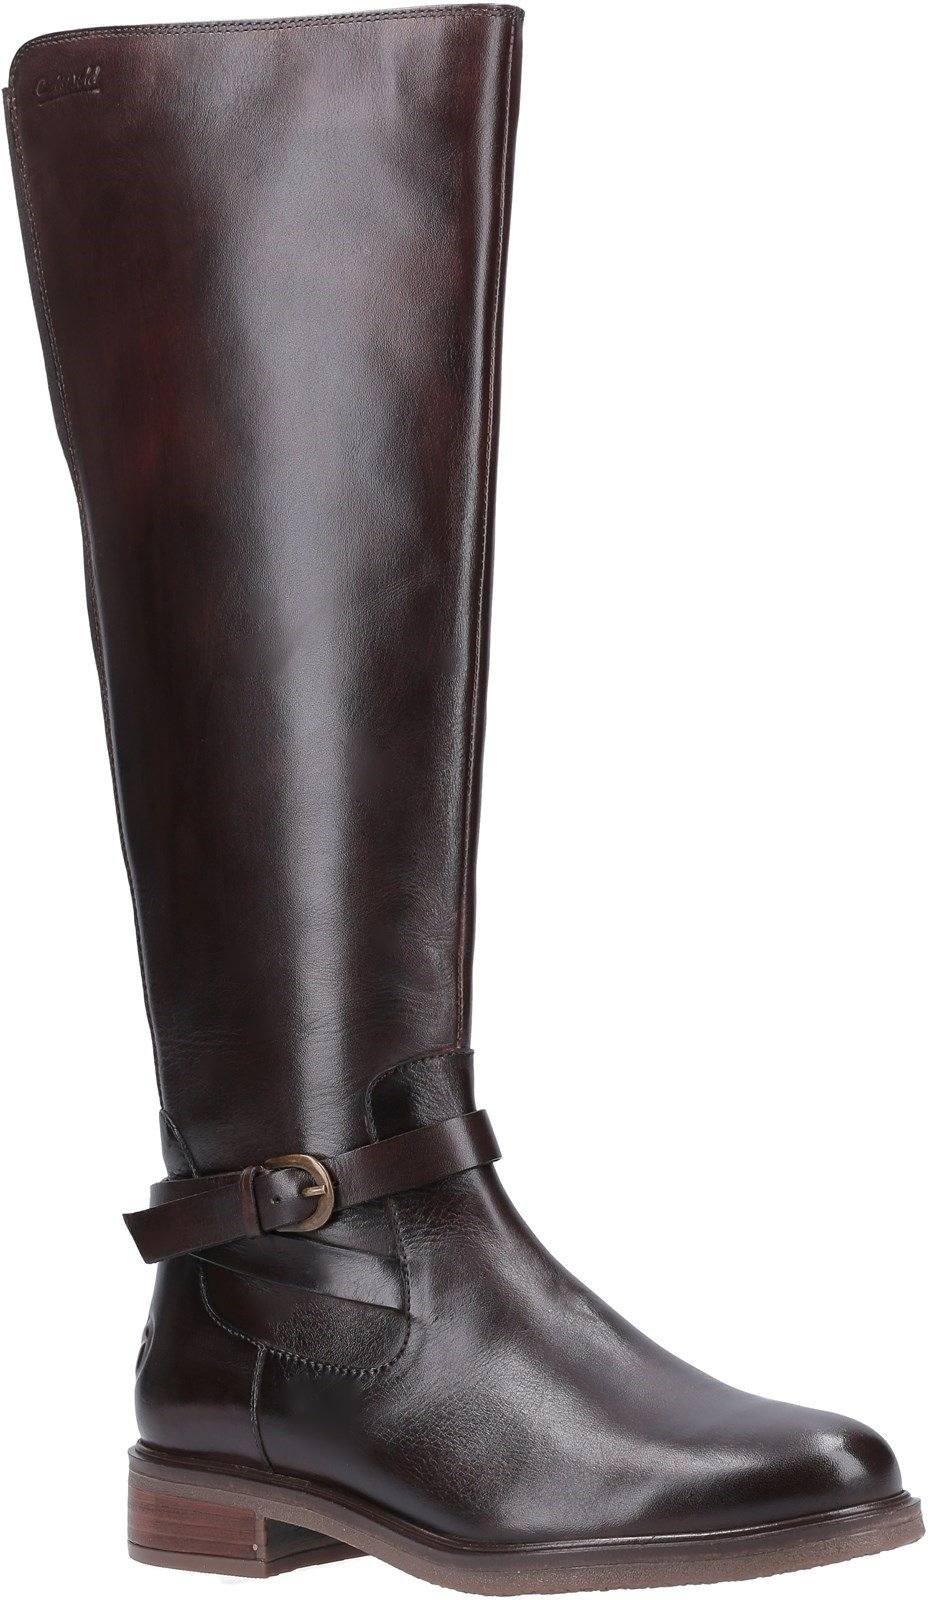 Cotswold Women's Leafield Knee High Boots 30989 - Brown 3